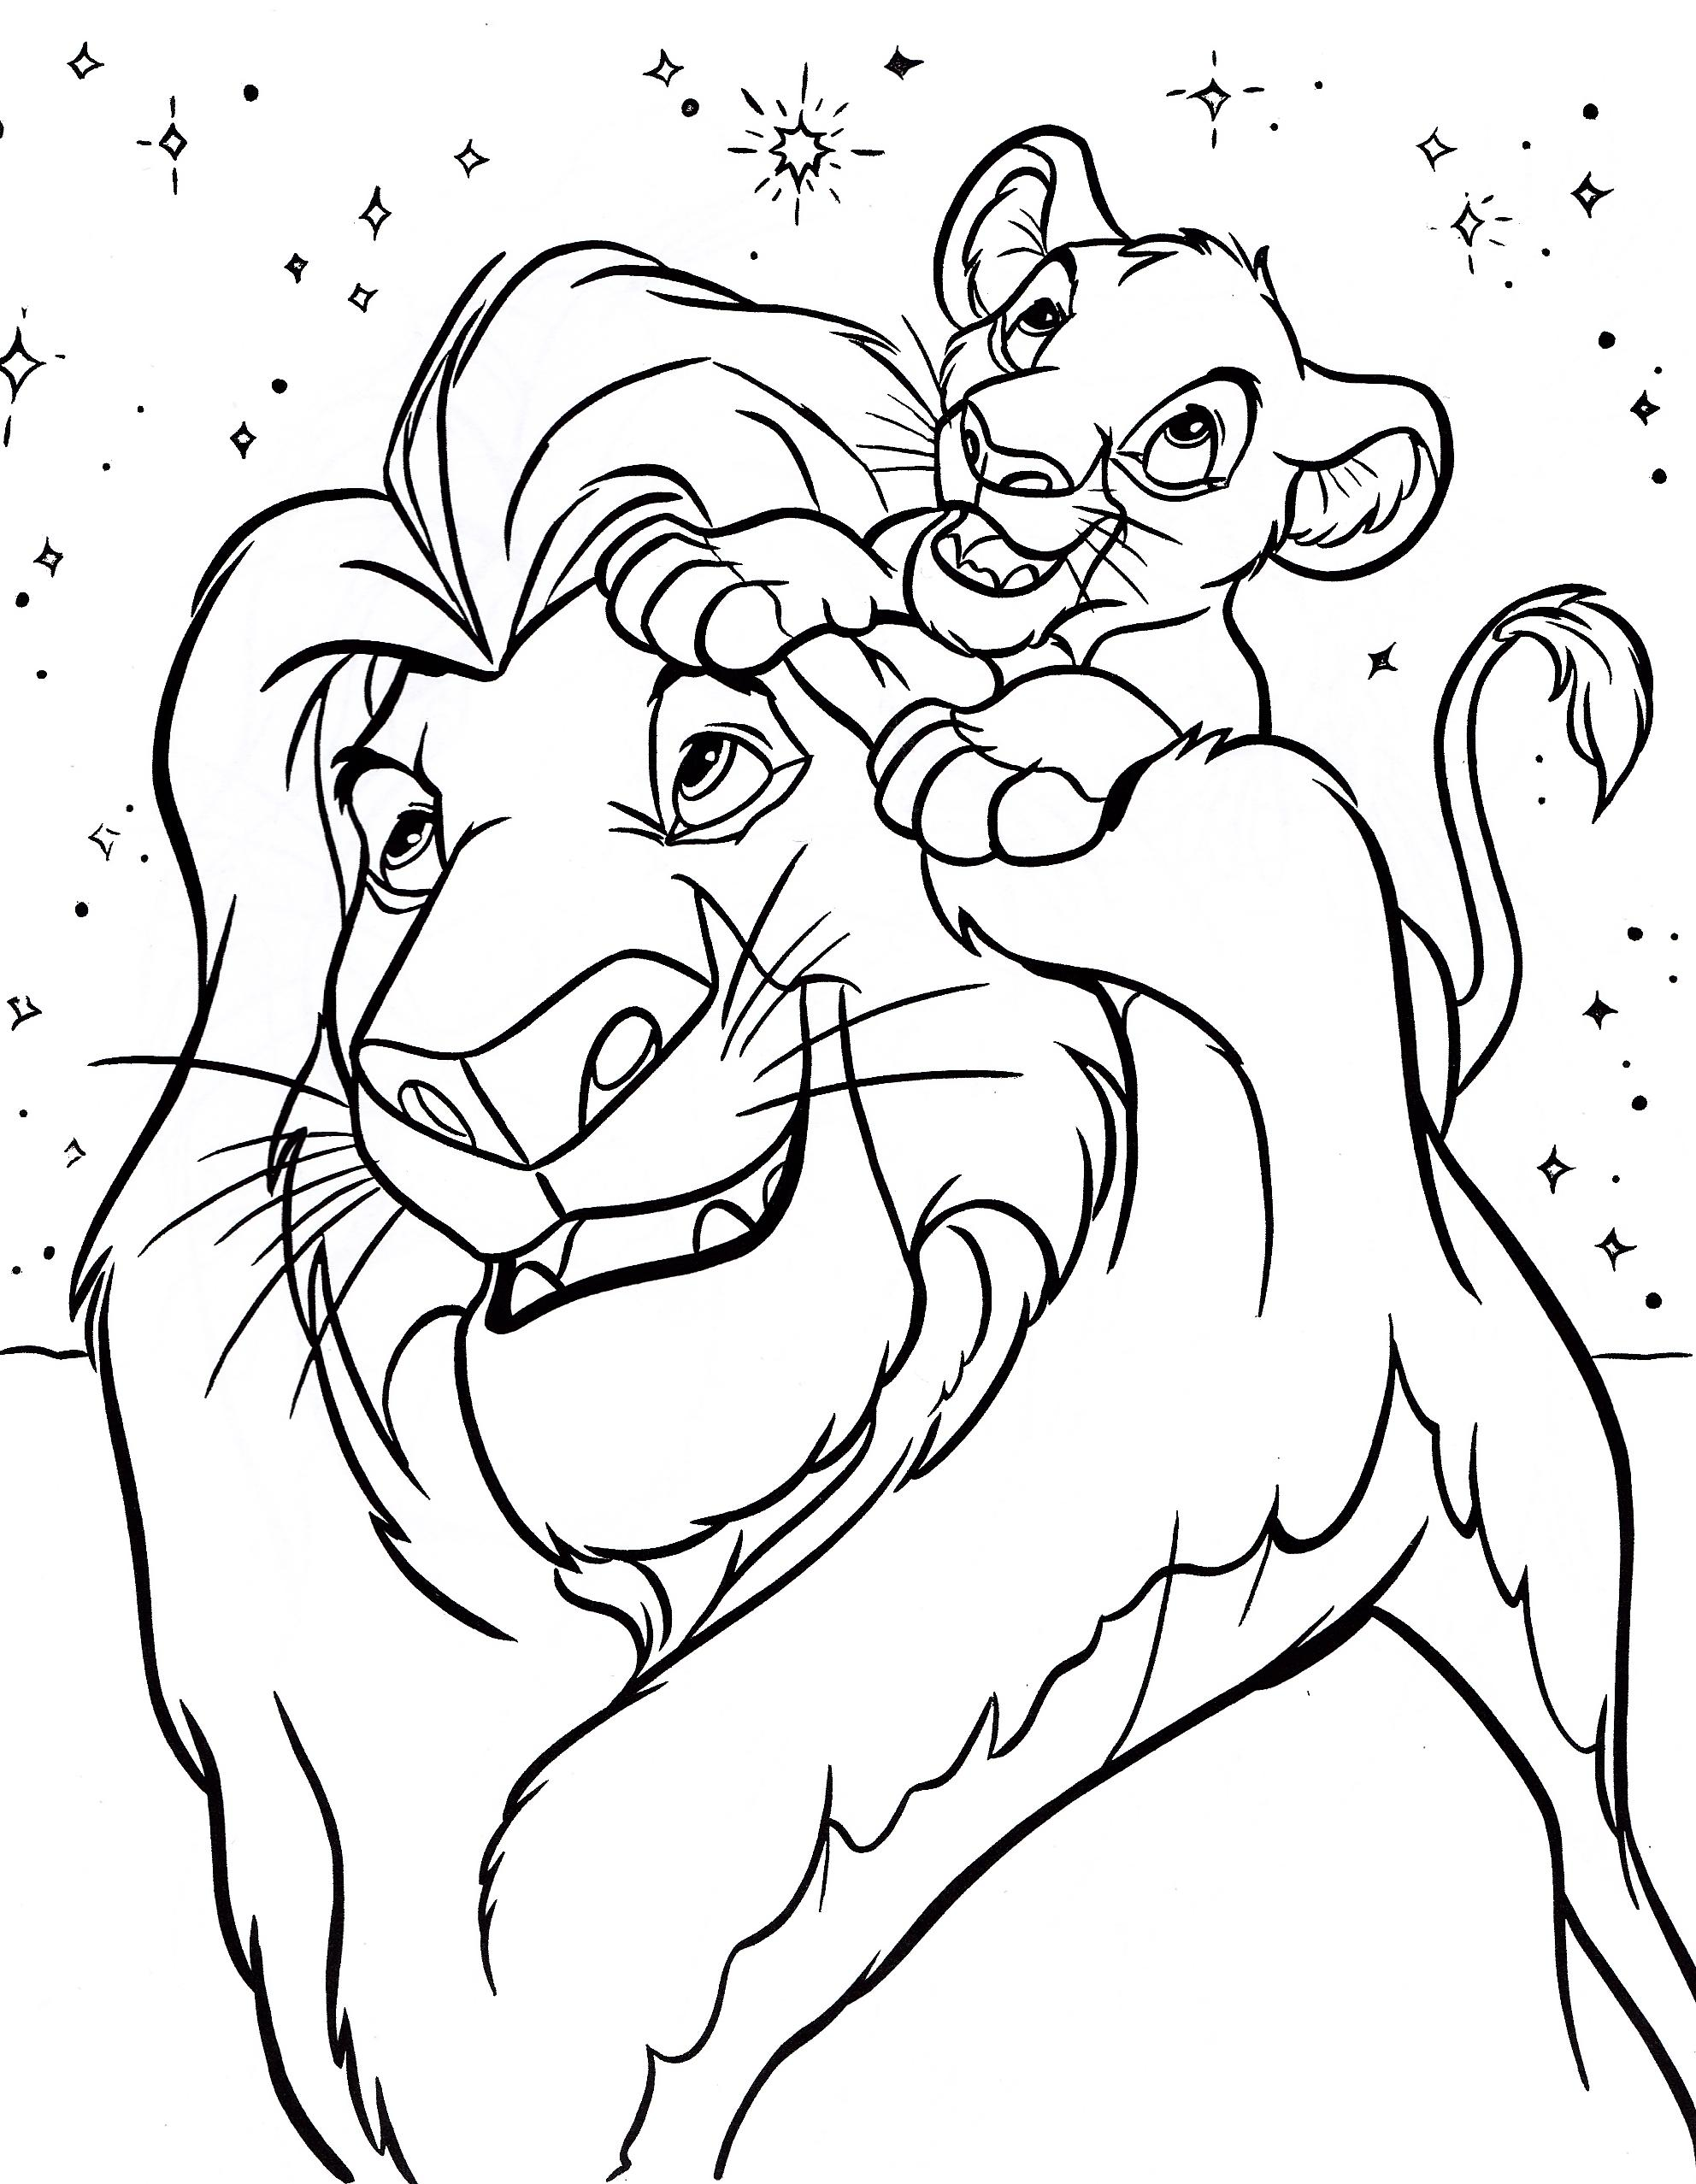 - Disney Coloring Pages - Best Coloring Pages For Kids